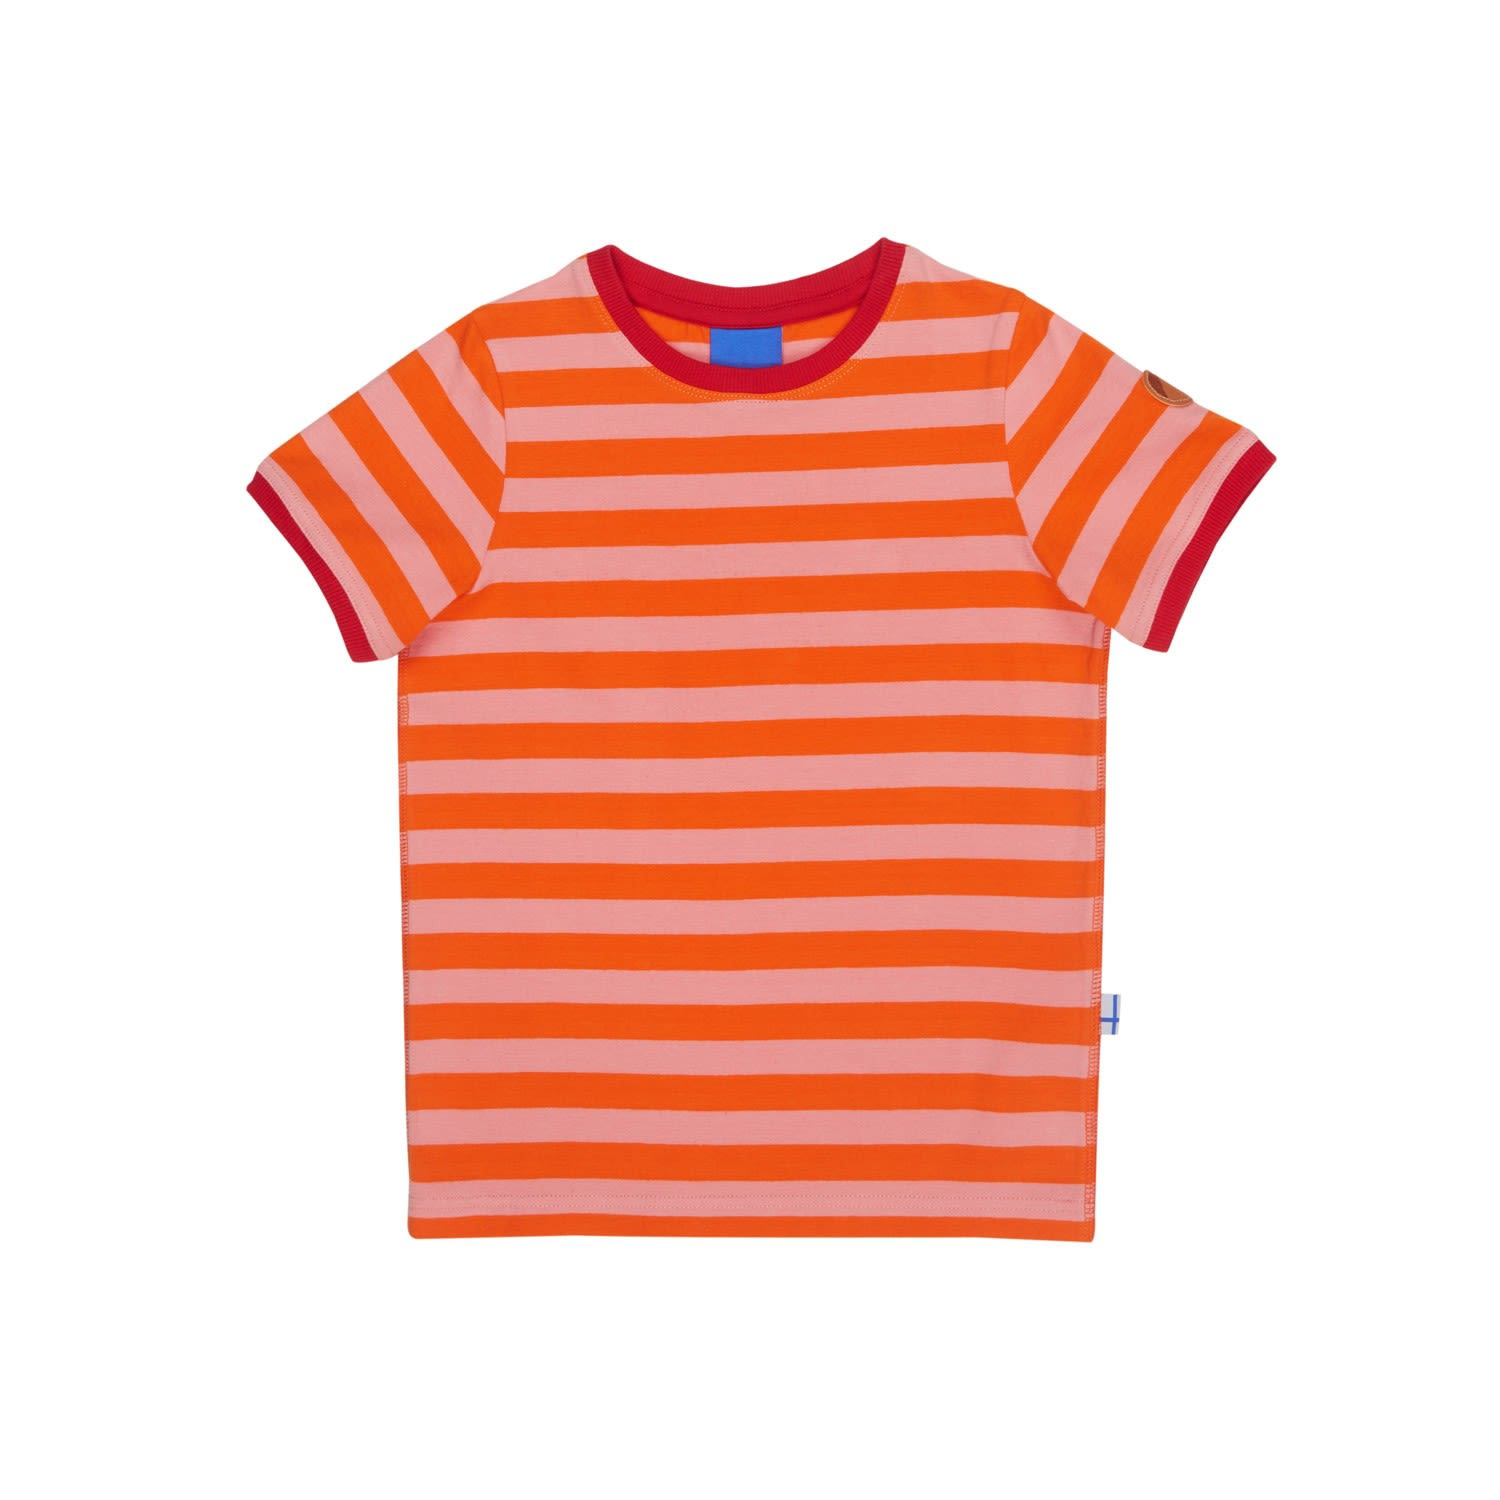 Finkid Renkaat Pink, 100 -110 -Farbe Carrot -Coral Almond, 100 -110